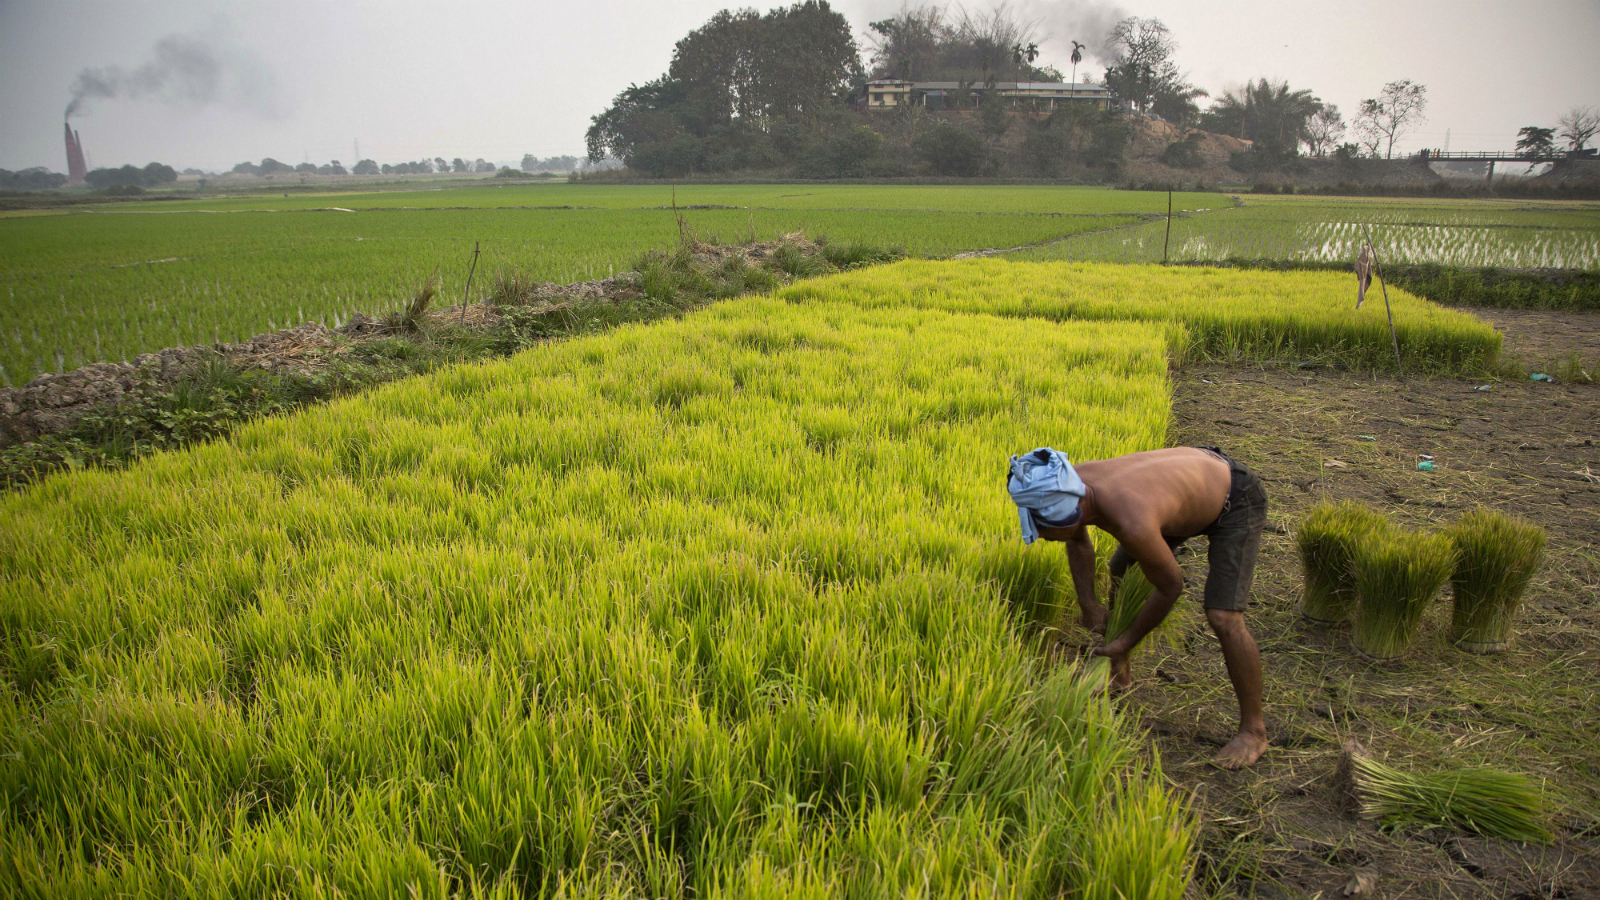 An Indian farmer works in his paddy field in Roja Mayong village, east of Gauhati, India, Wednesday, Feb. 1, 2017. India's finance minister pledged relief for middle class taxpayers and small and medium-sized companies on Wednesday, saying the government would spend billions of dollars to double farmers' incomes, upgrade ramshackle infrastructure and provide cheap housing. (AP Photo/ Anupam Nath)